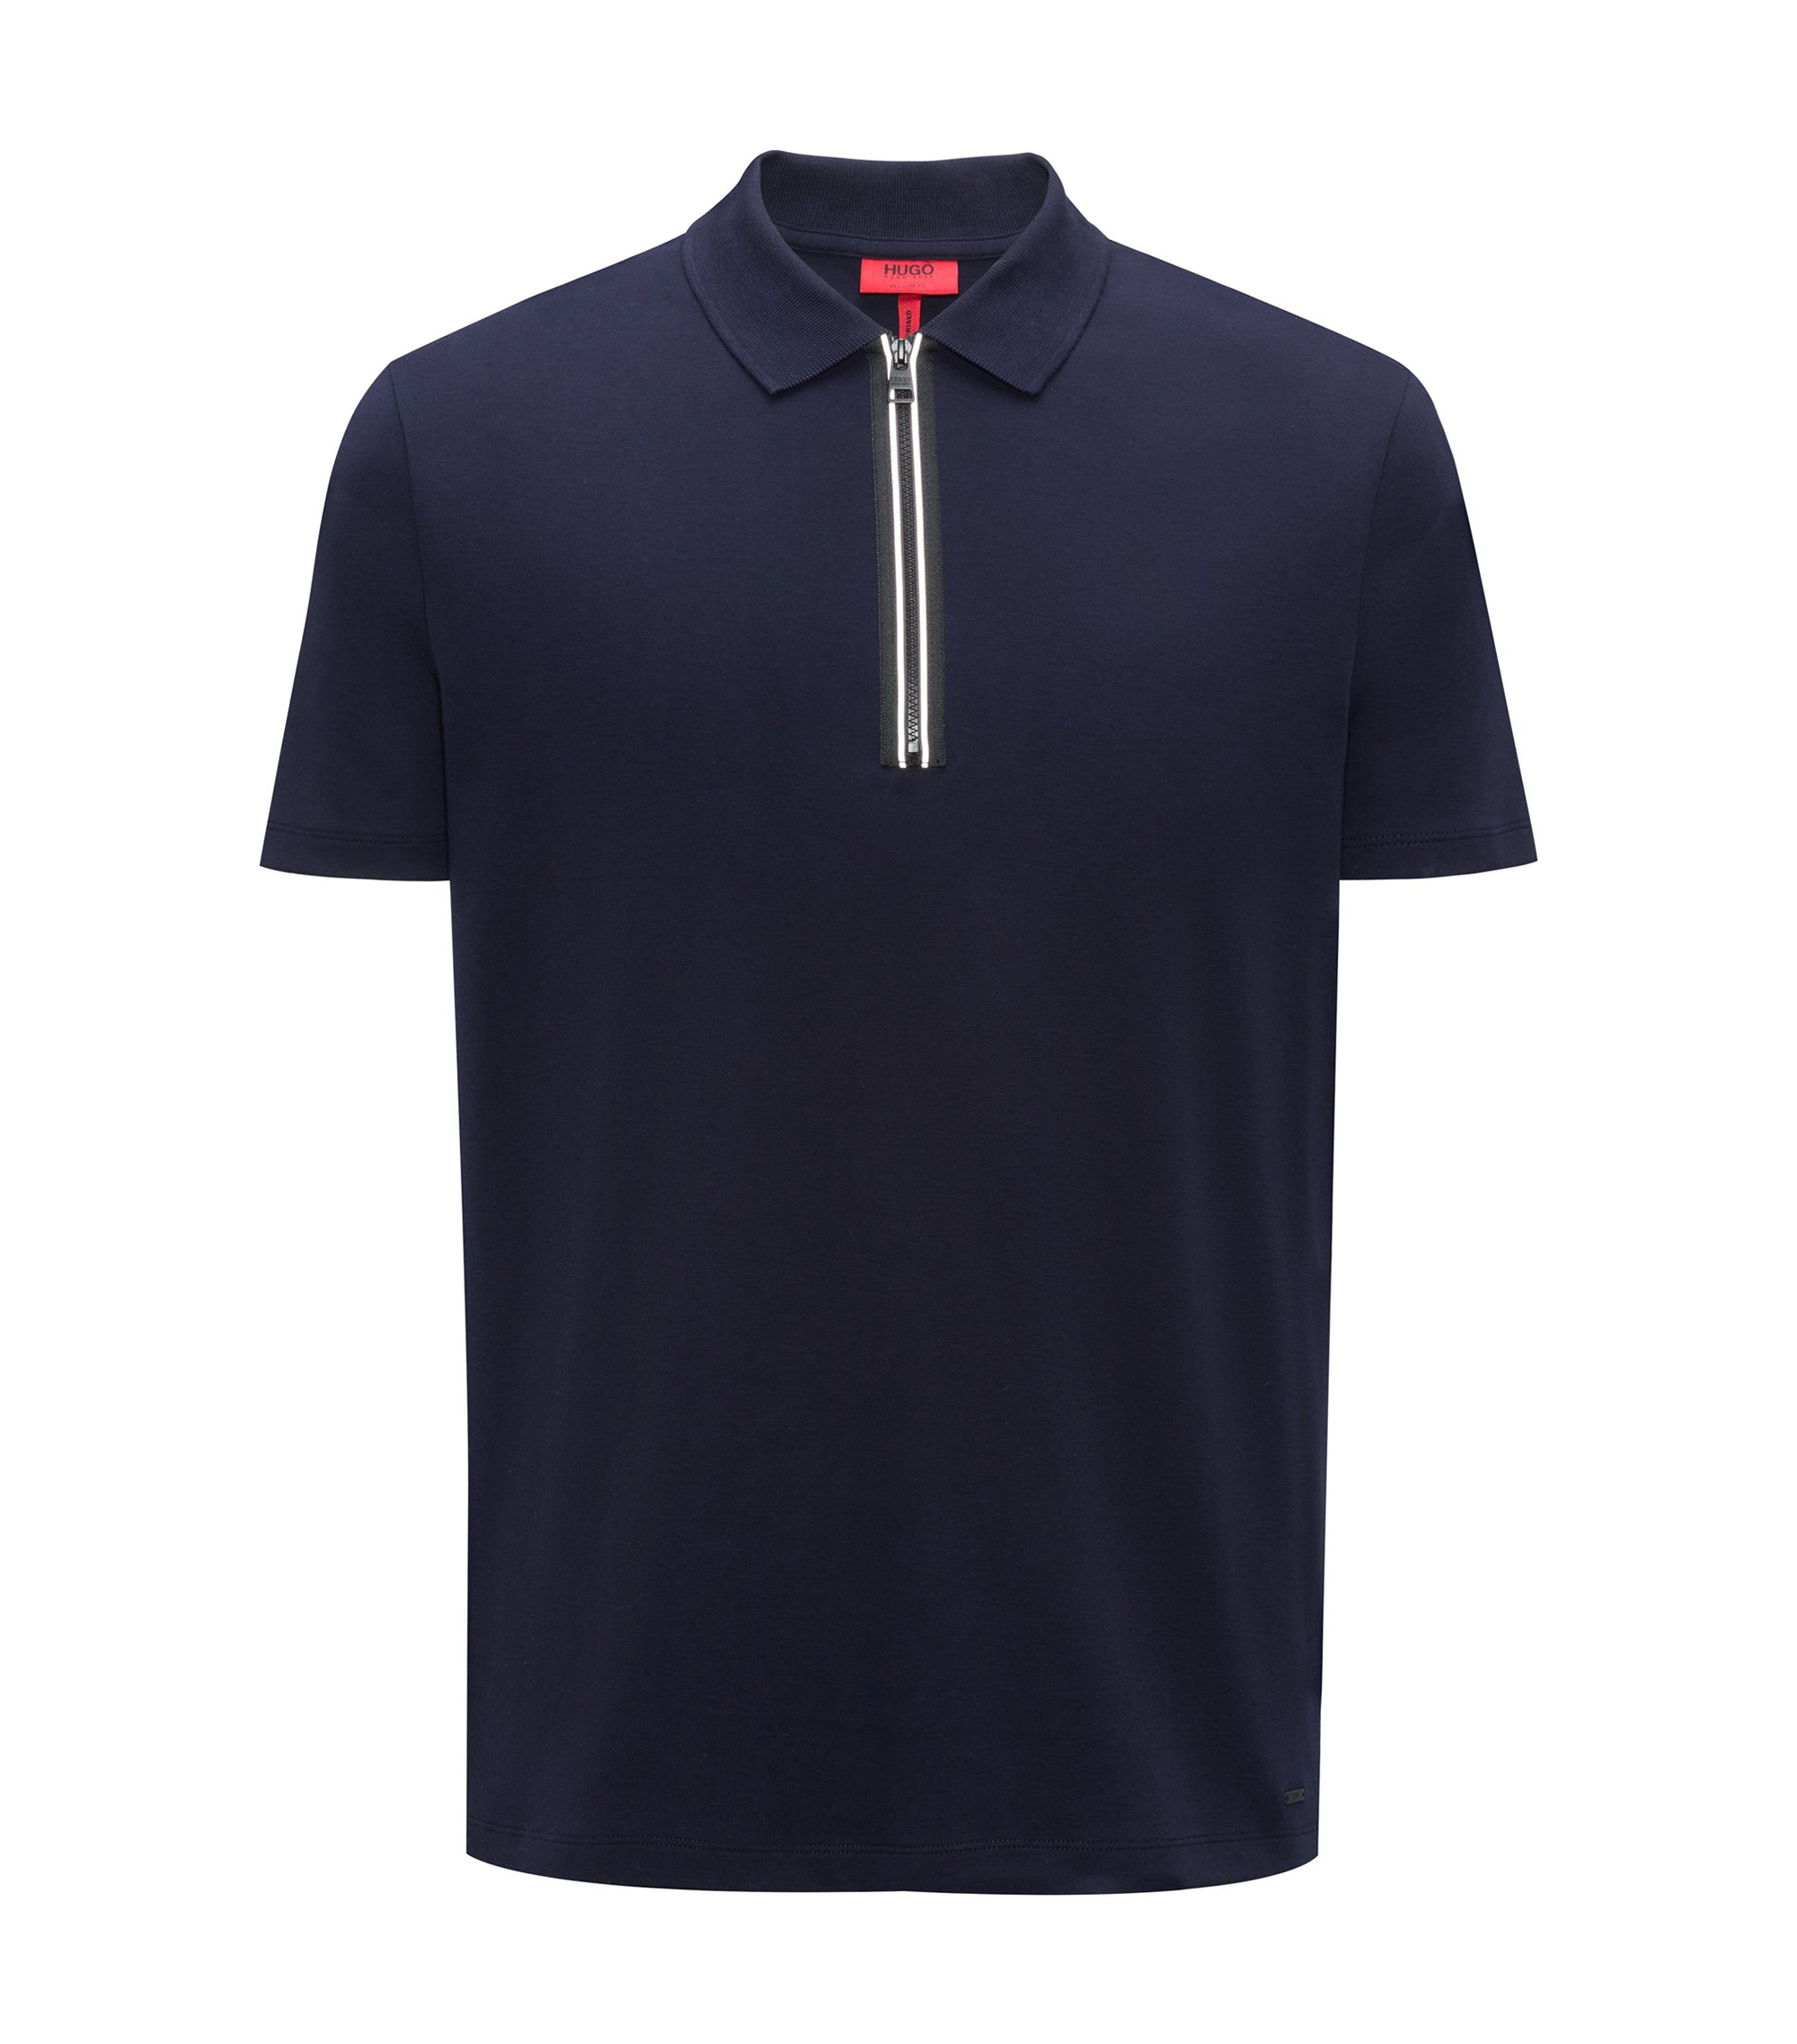 Polo shirt in interlock cotton with contrast zipper detail, Dark Blue